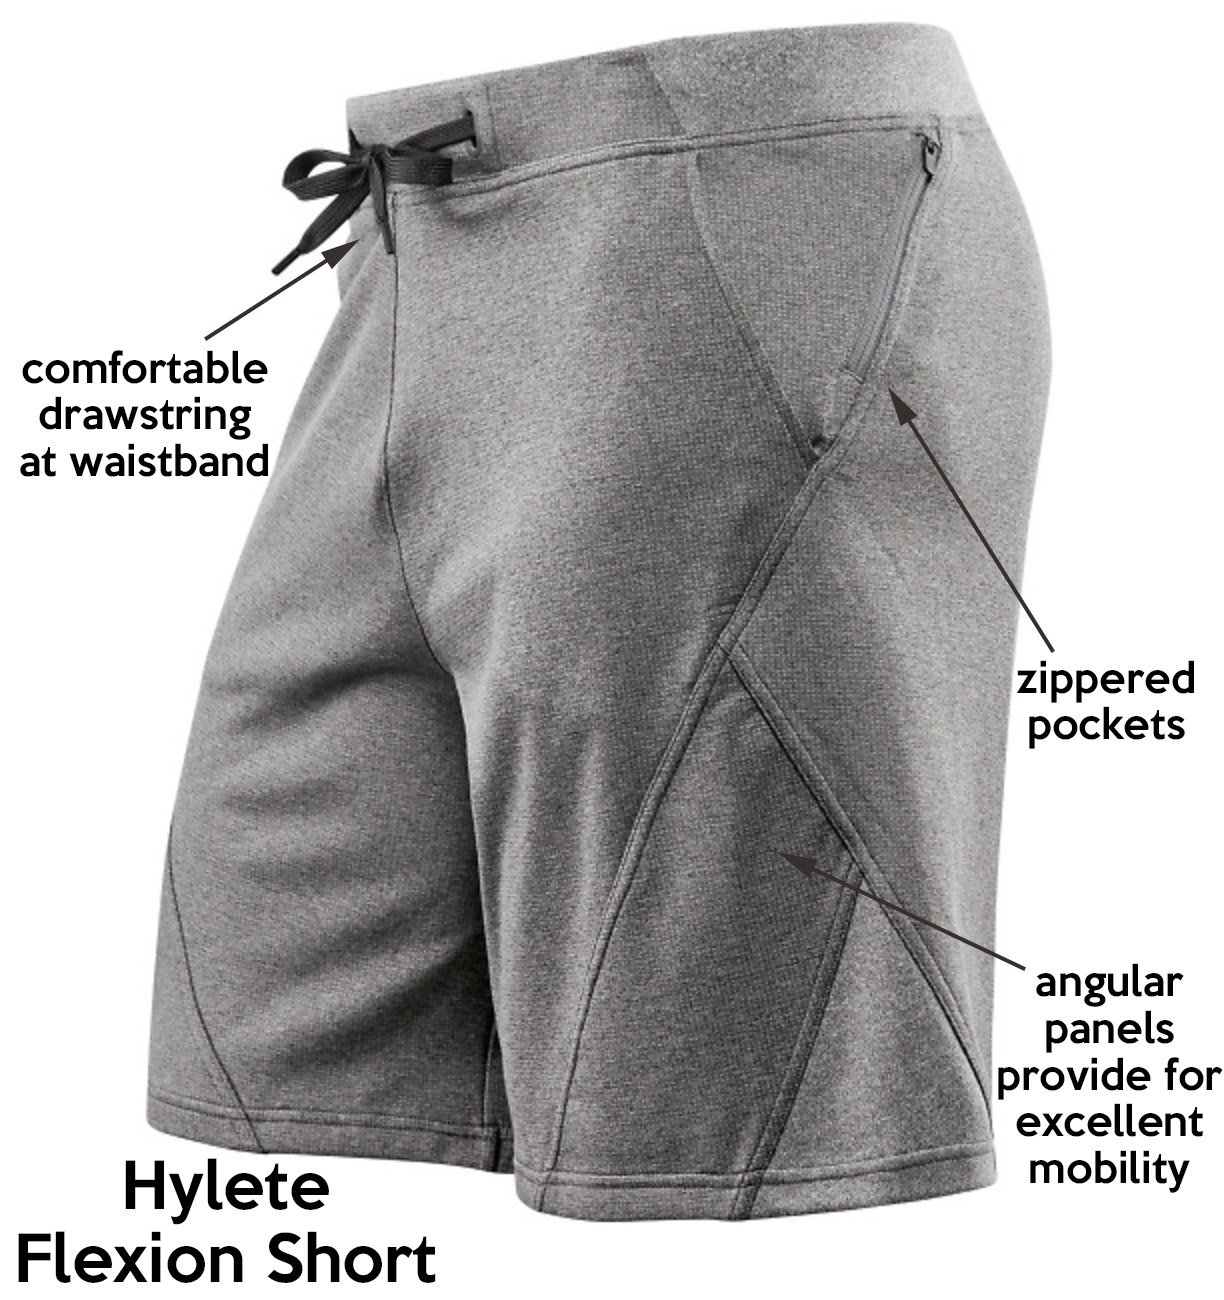 Hylete flexion short